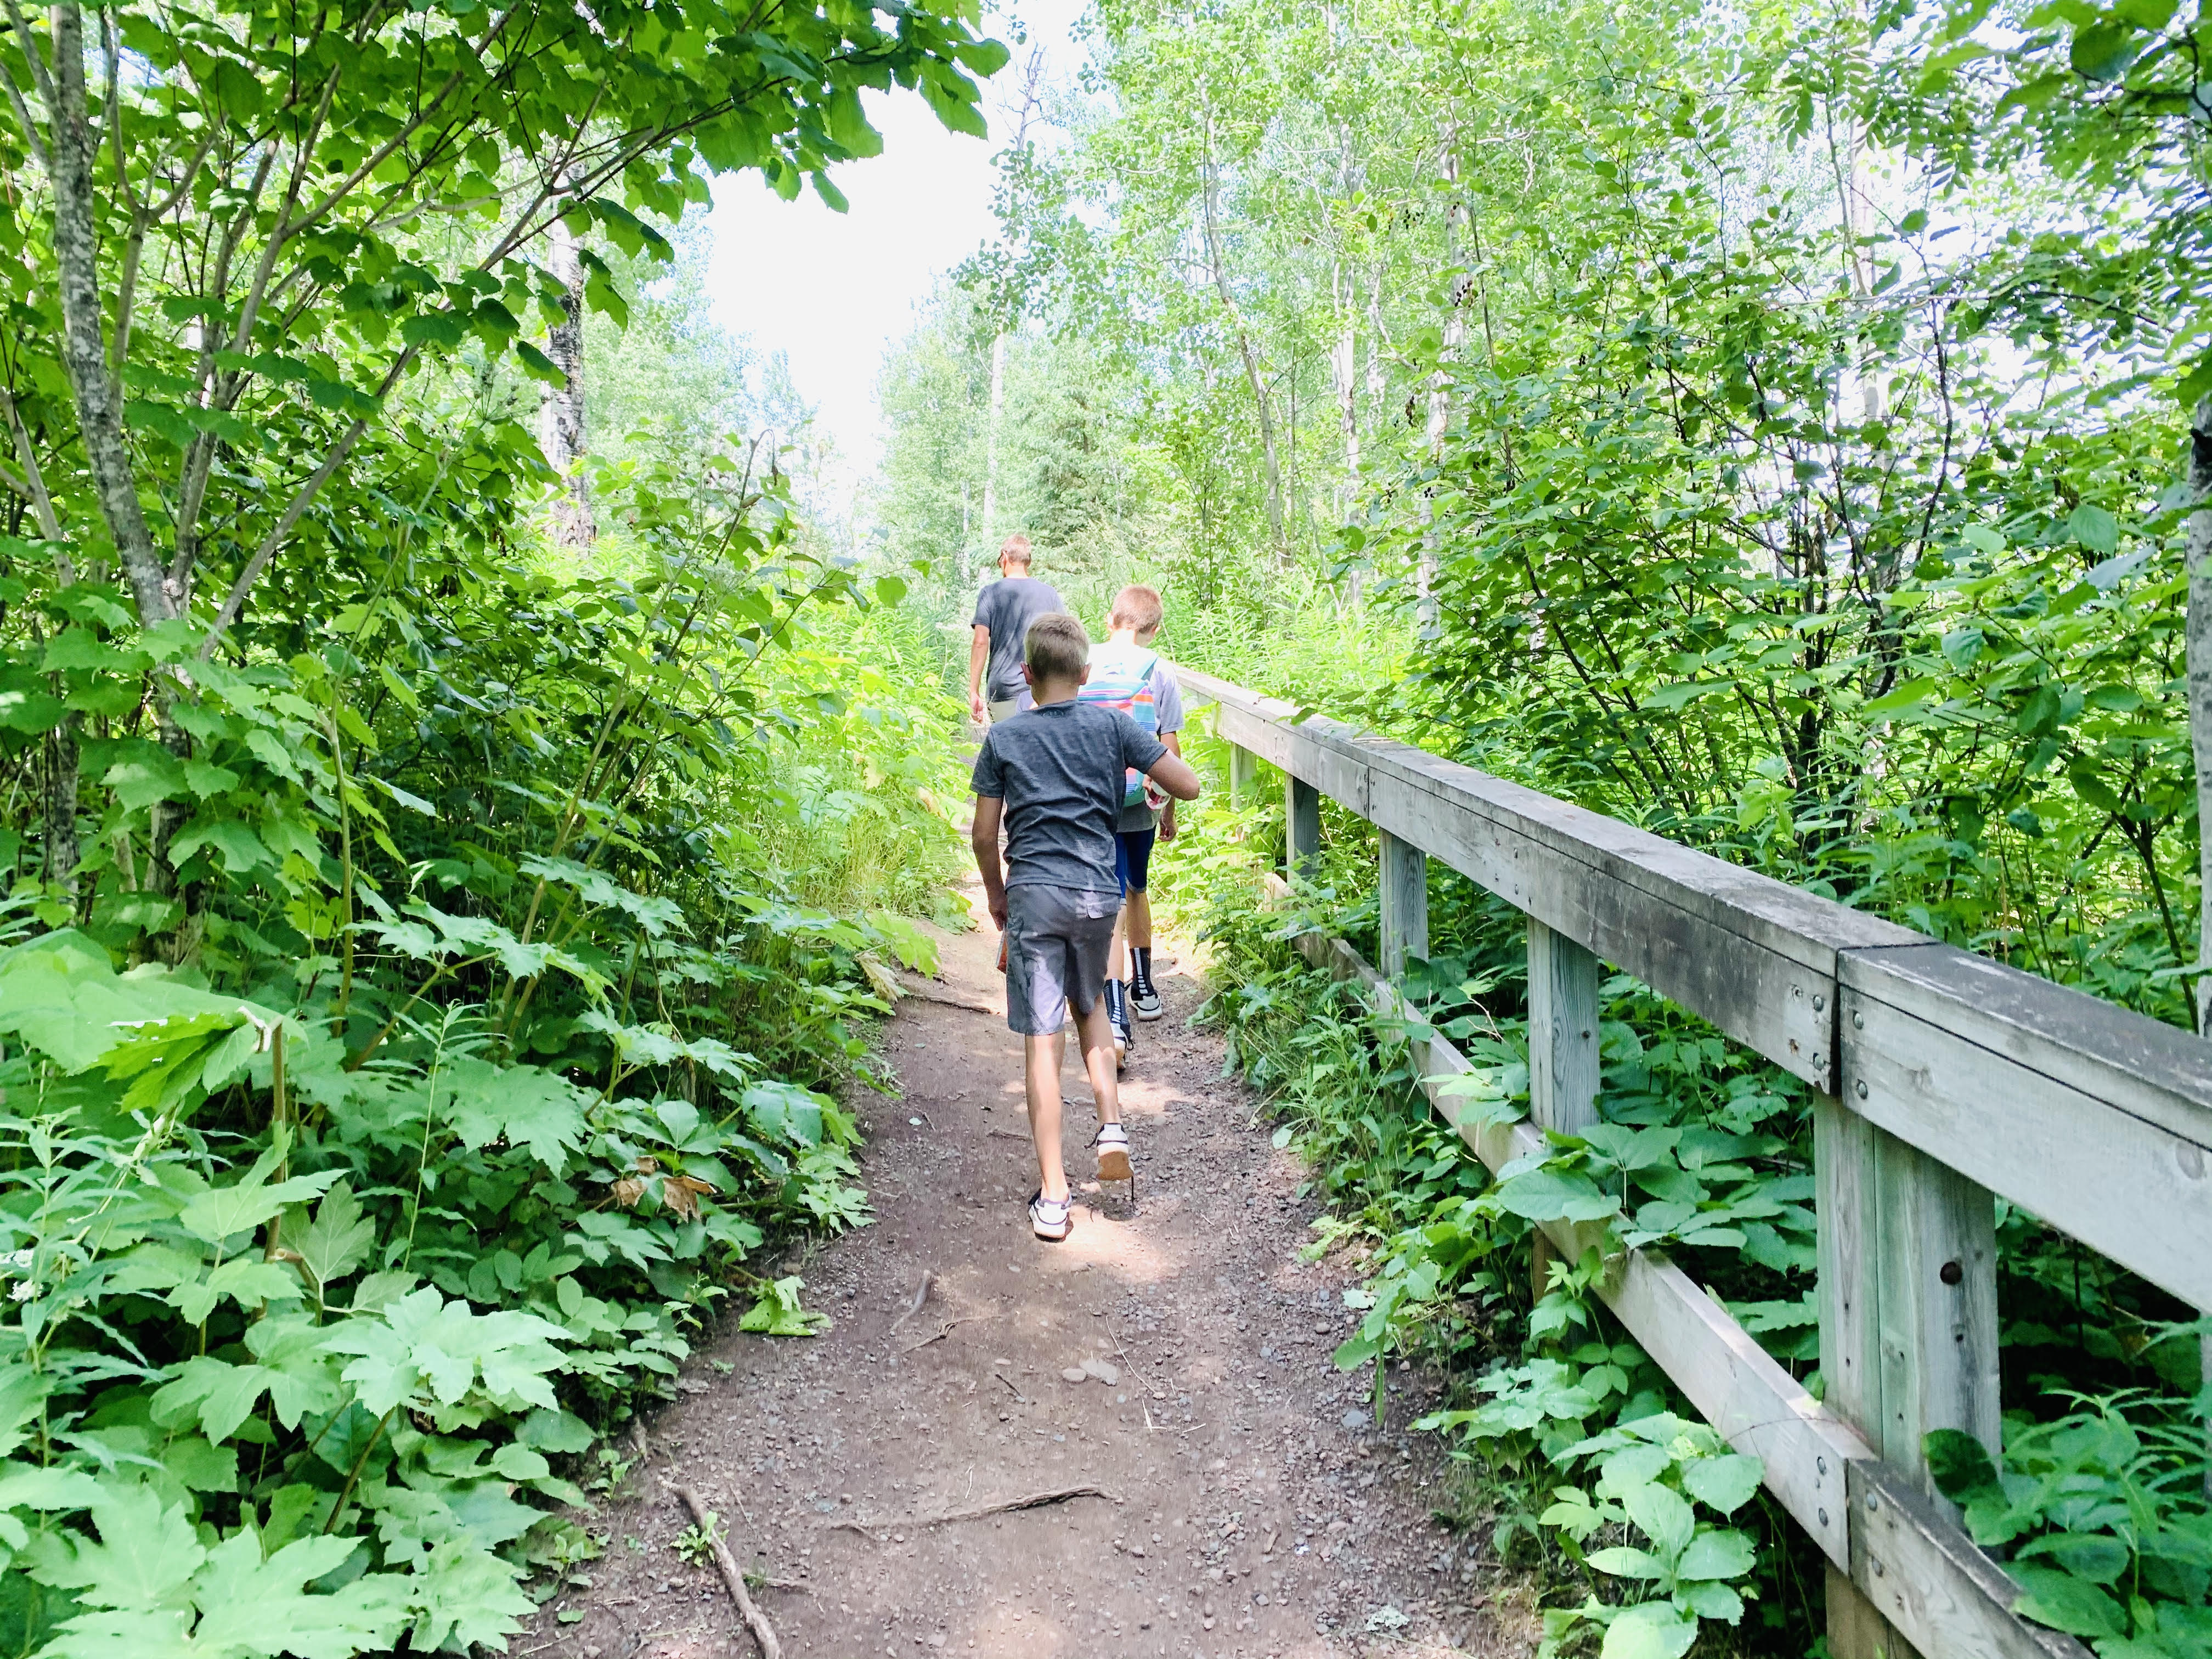 Top U.S. Family Travel Blog, Travel With A Plan shares their most recent Family Travel Tips! (Hiking!)